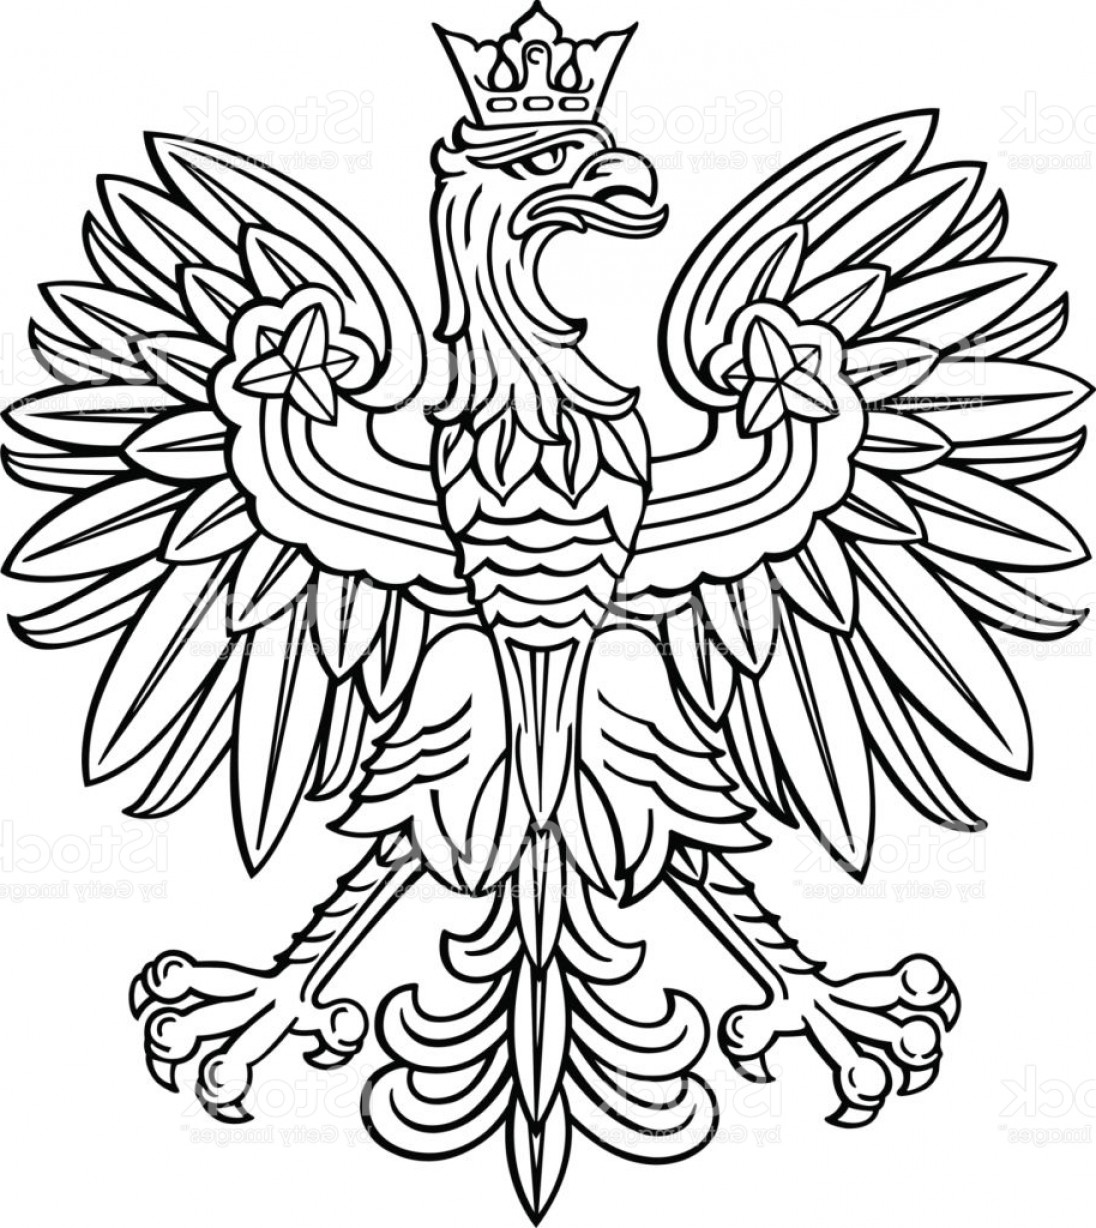 1096x1228 Polish Eagle Vector Arenawp